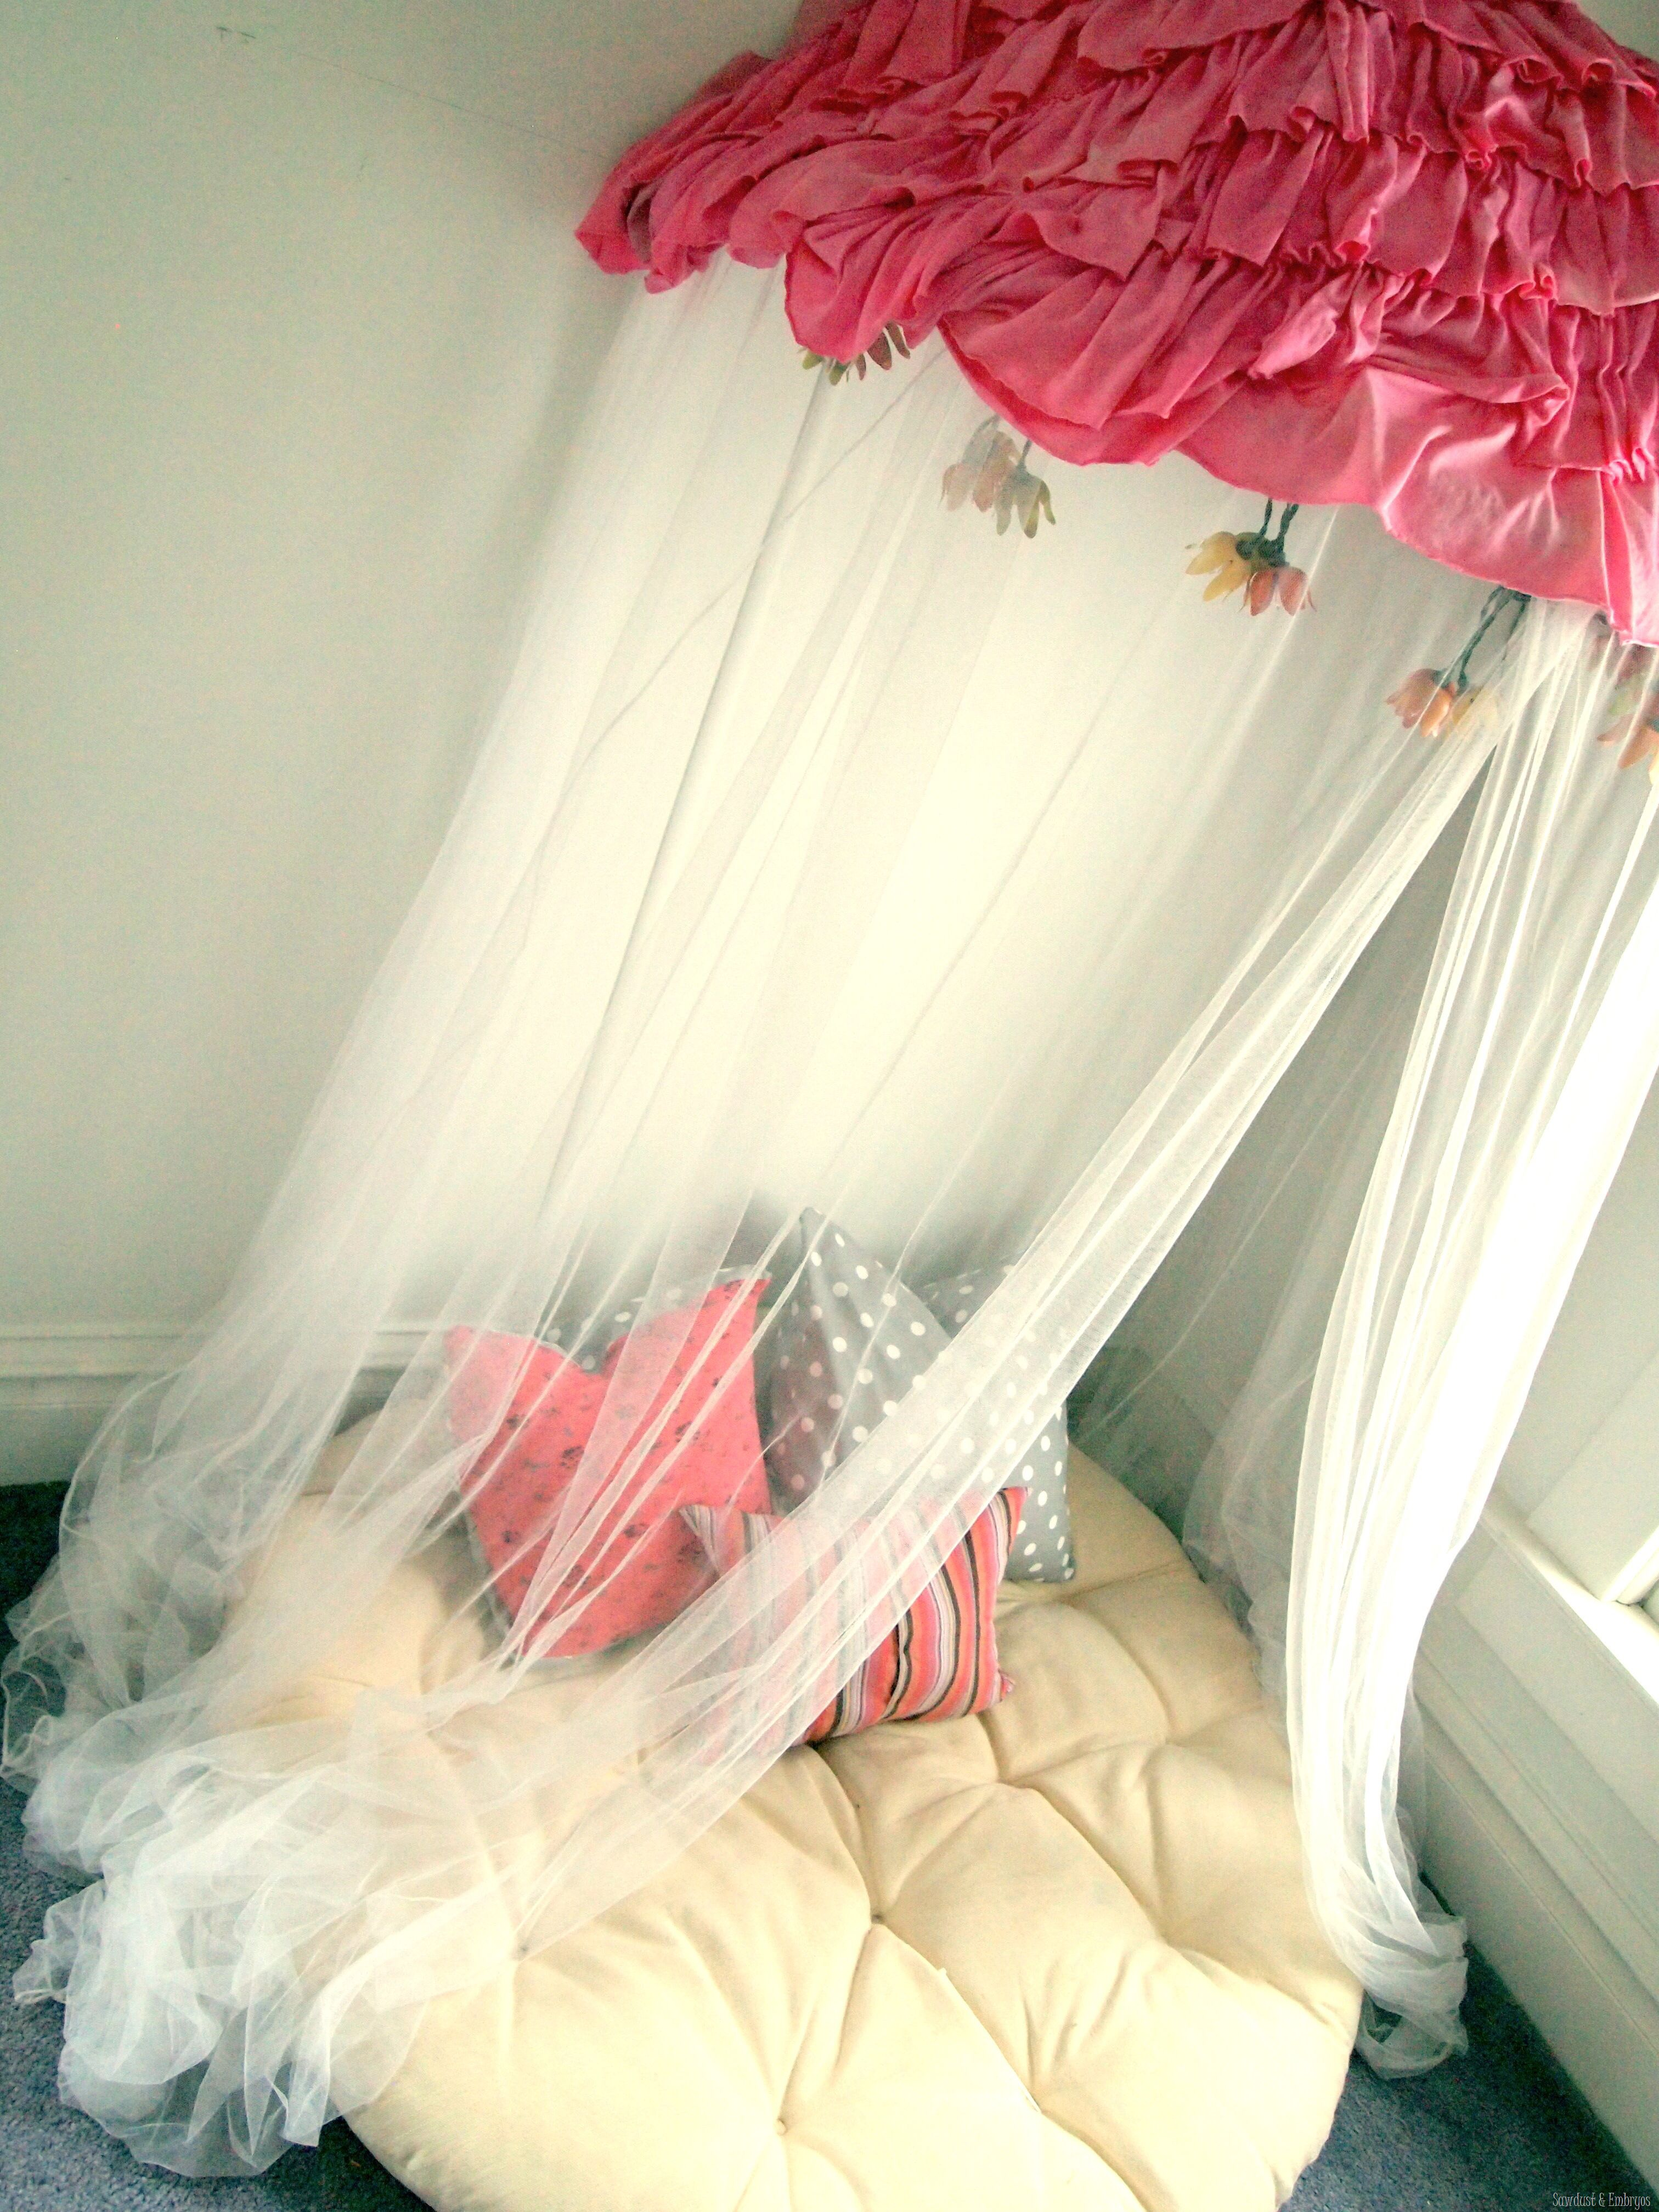 Find This Pin And More On Keyu0027s Girls Bedroom Decor Ideas By Keyanna1975.  DIY::Papasan Chair ...